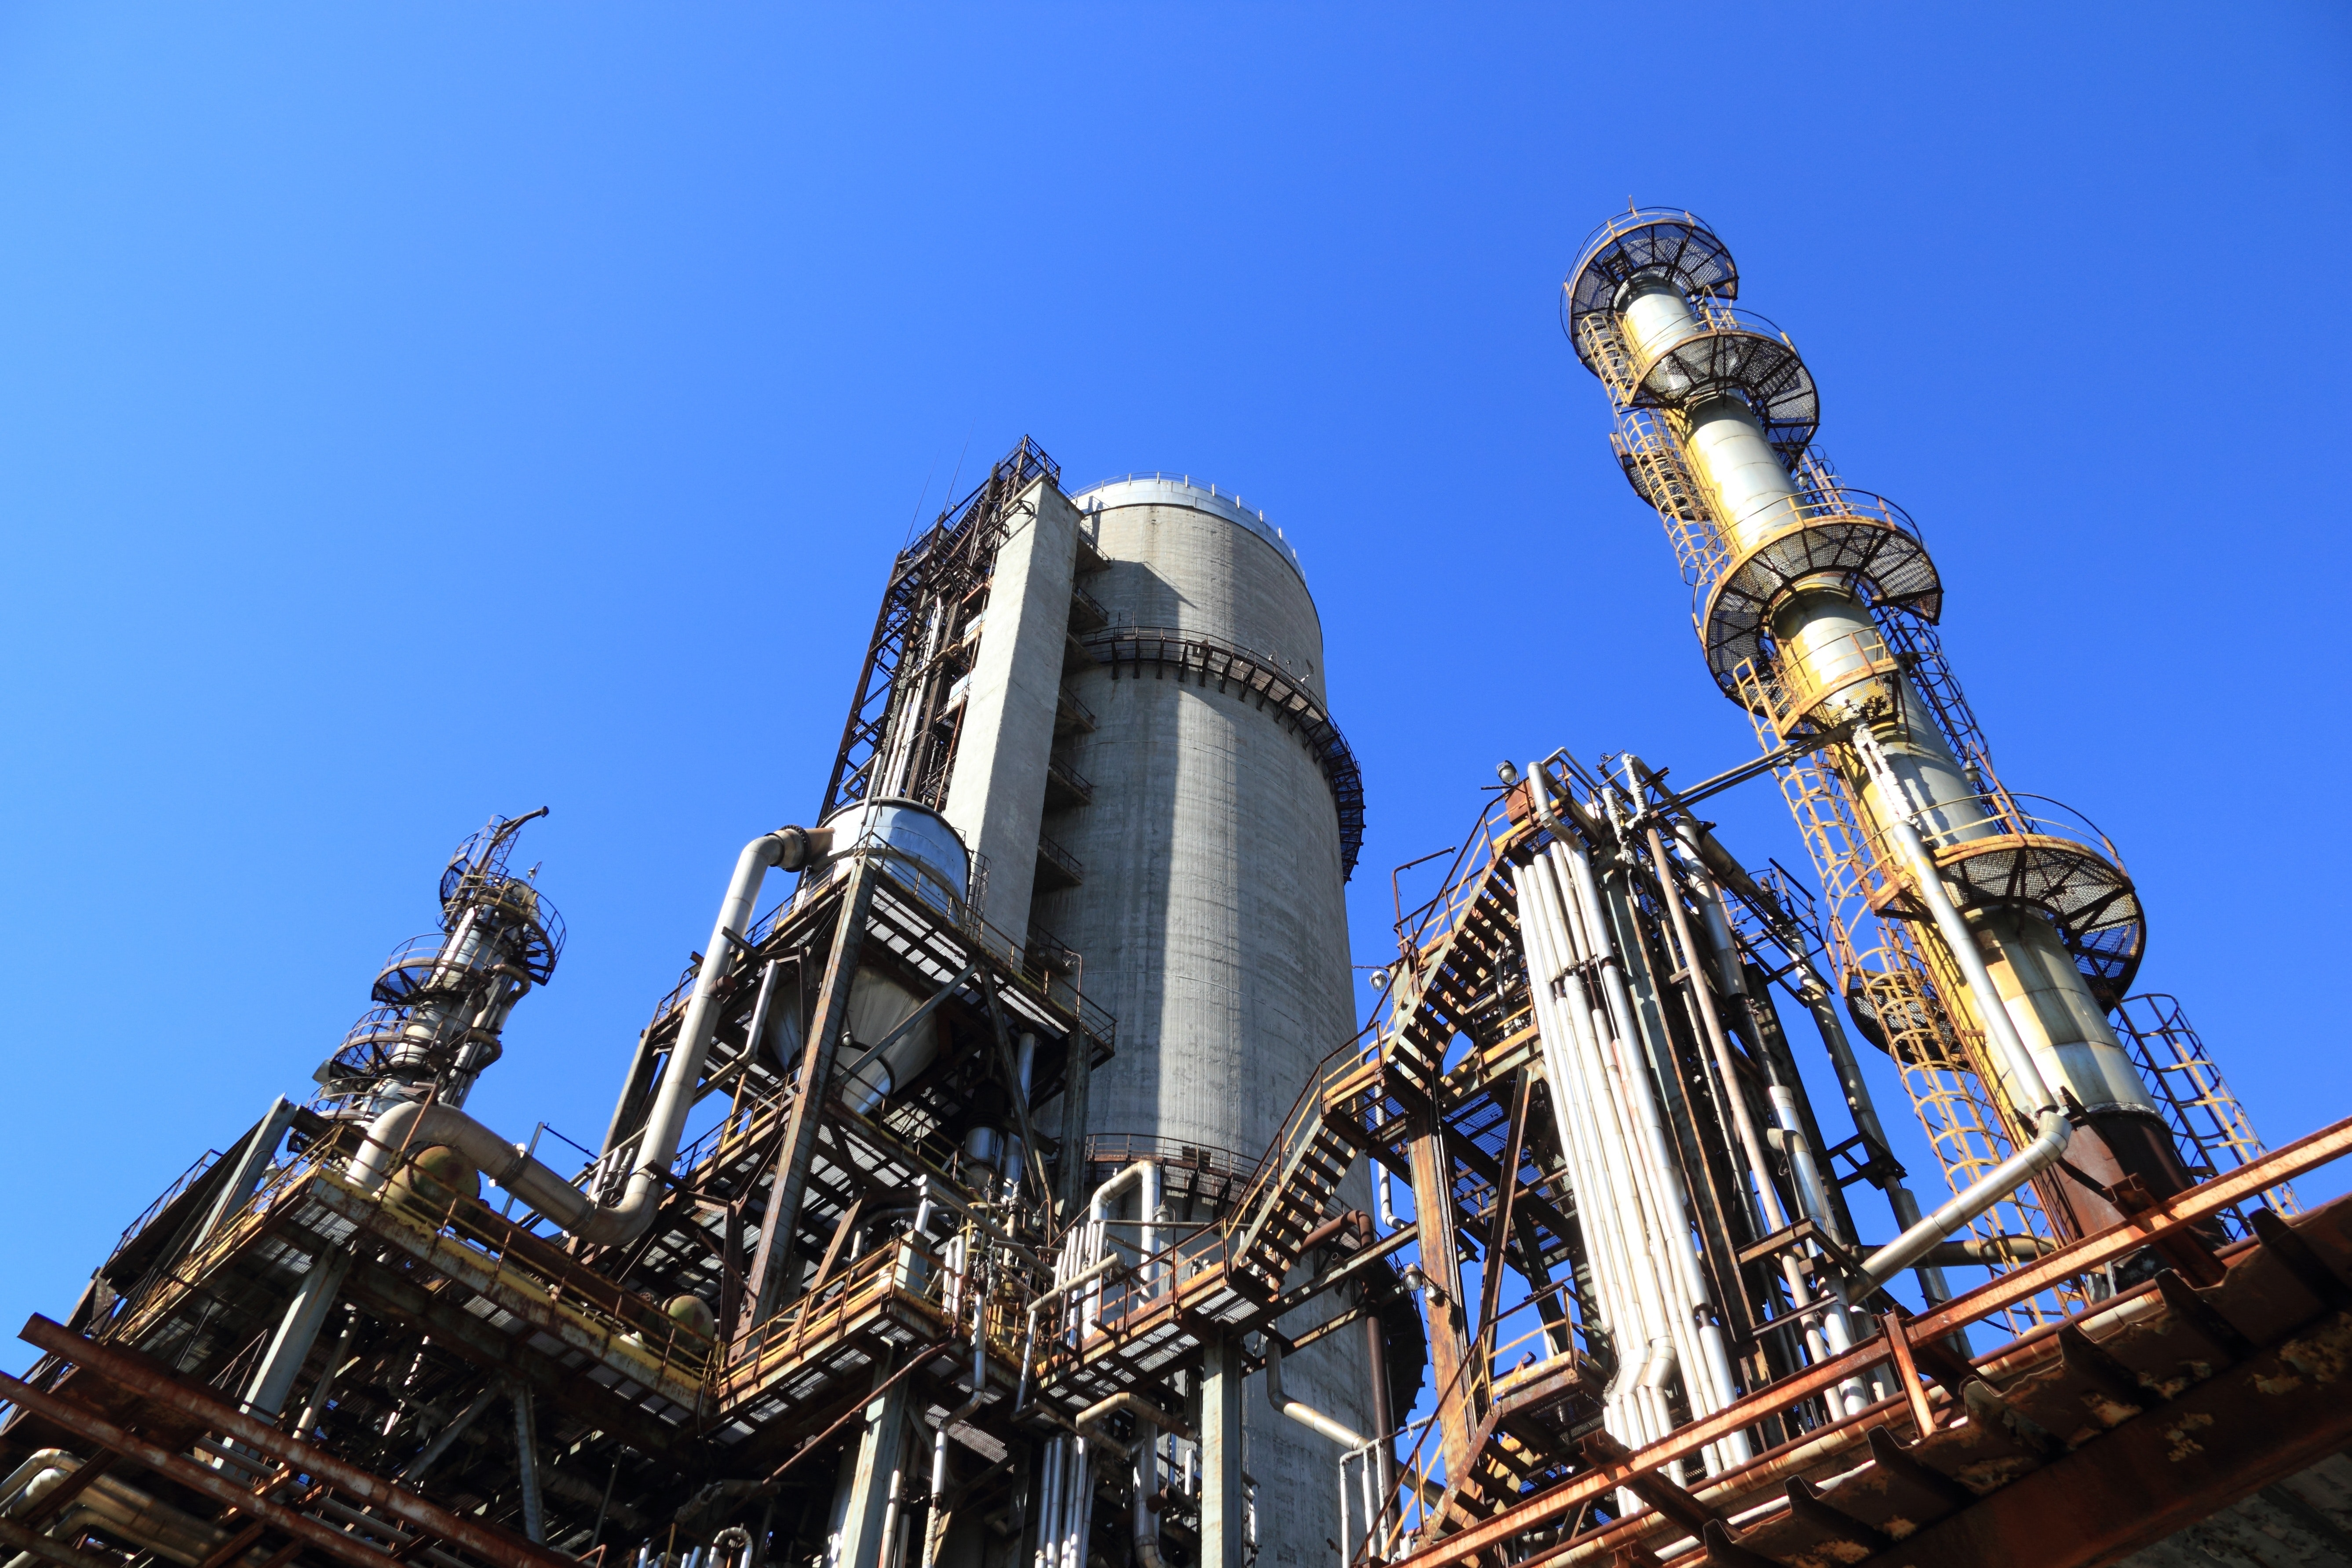 View of Factory Against Blue Sky, Business, Outdoors, Steel, Smoke, HQ Photo